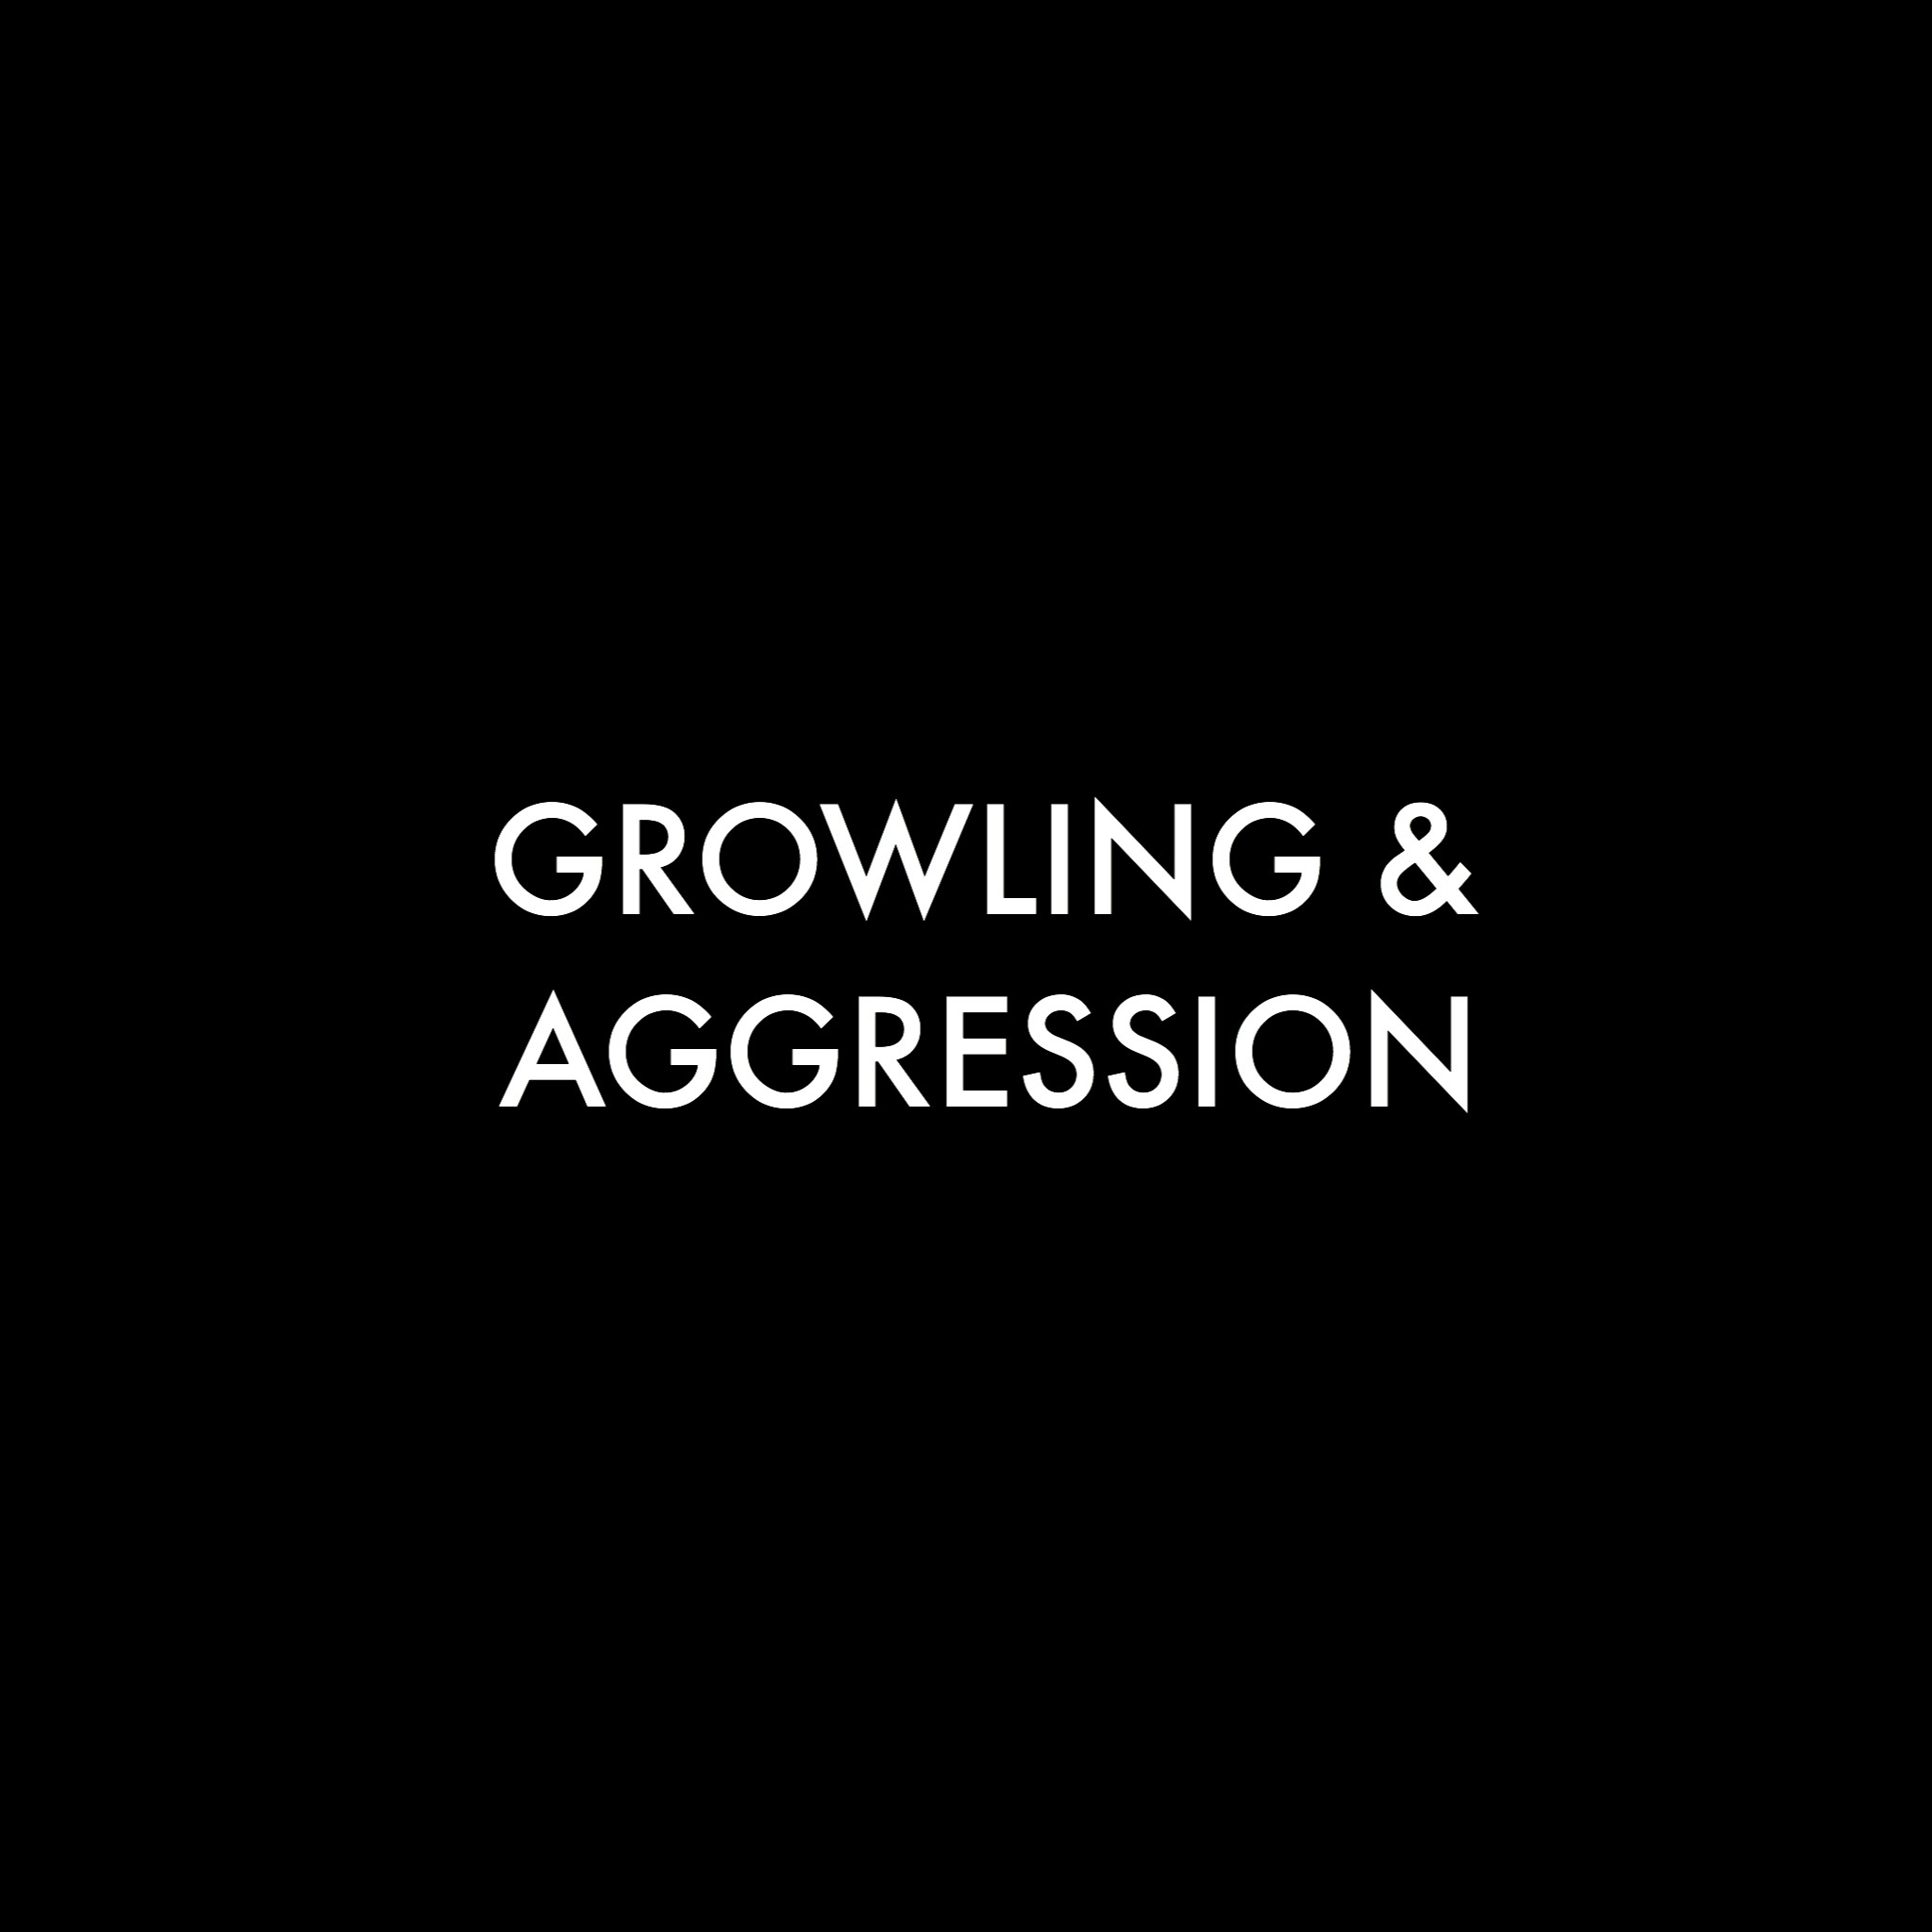 Growling and aggression